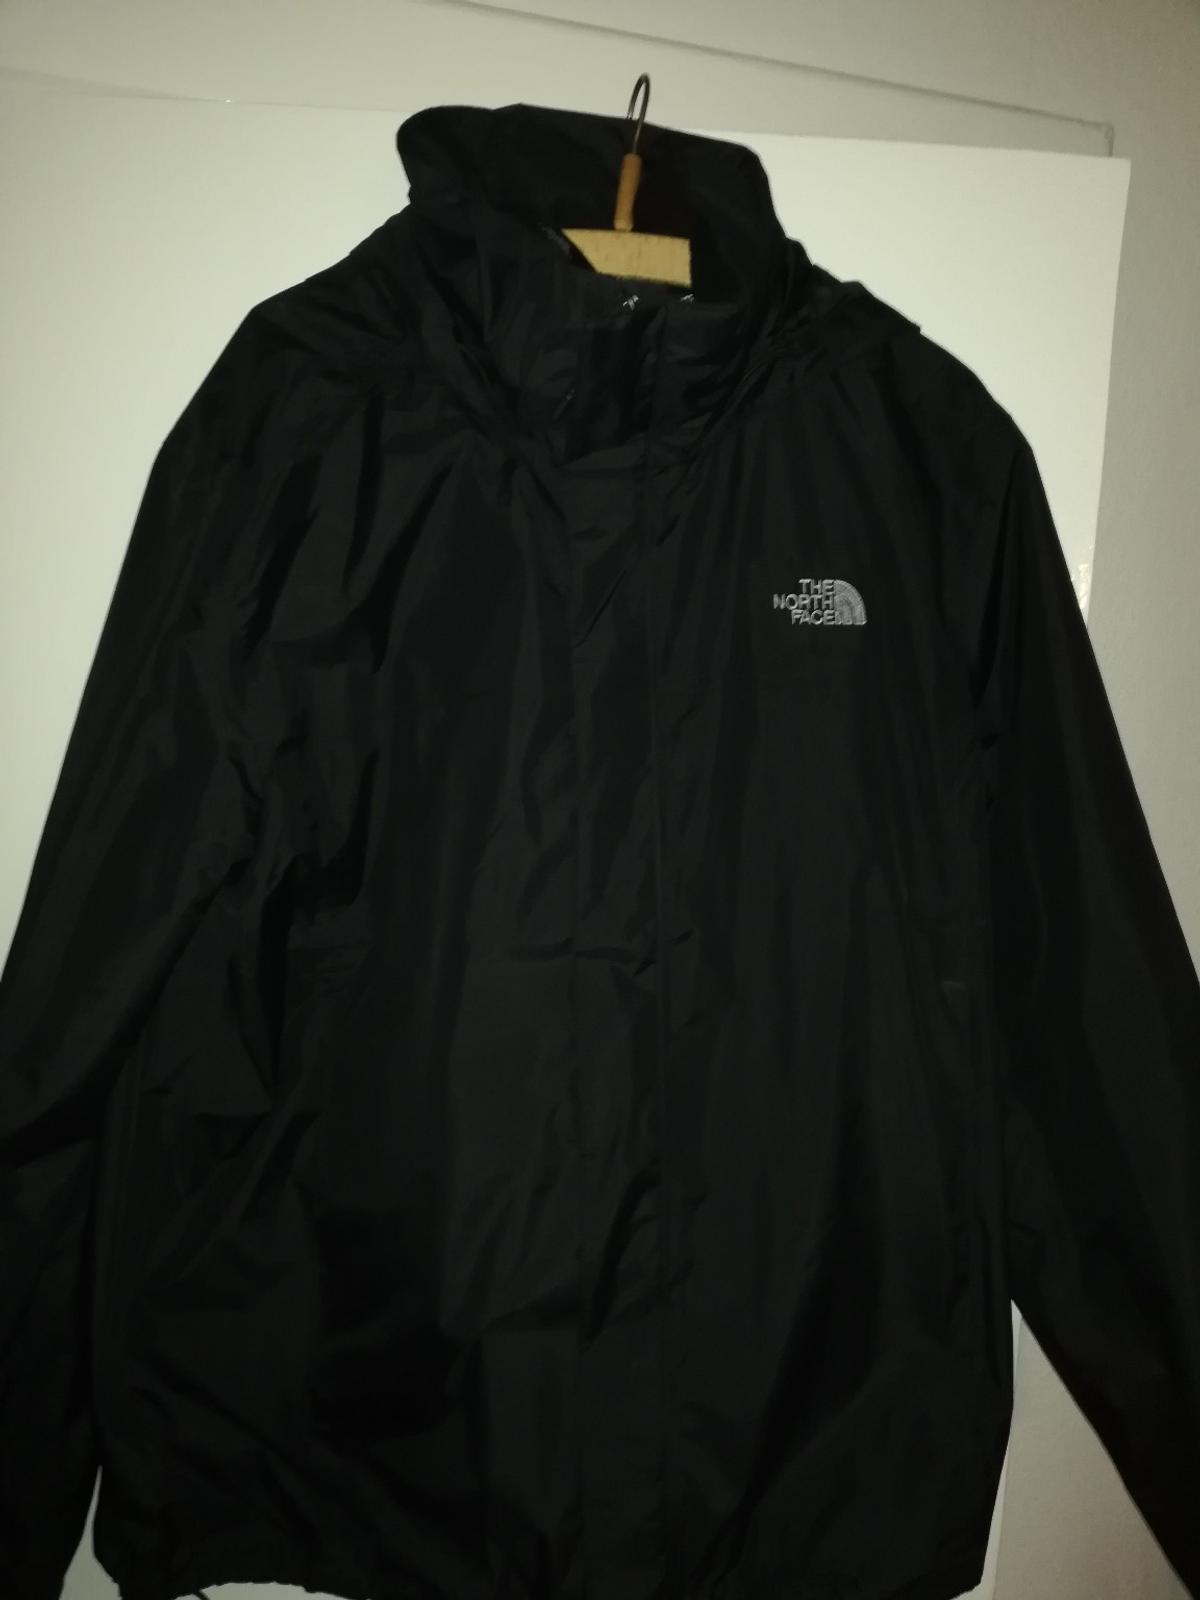 competitive price eaeaf 90df8 Herren The North Face Jacke